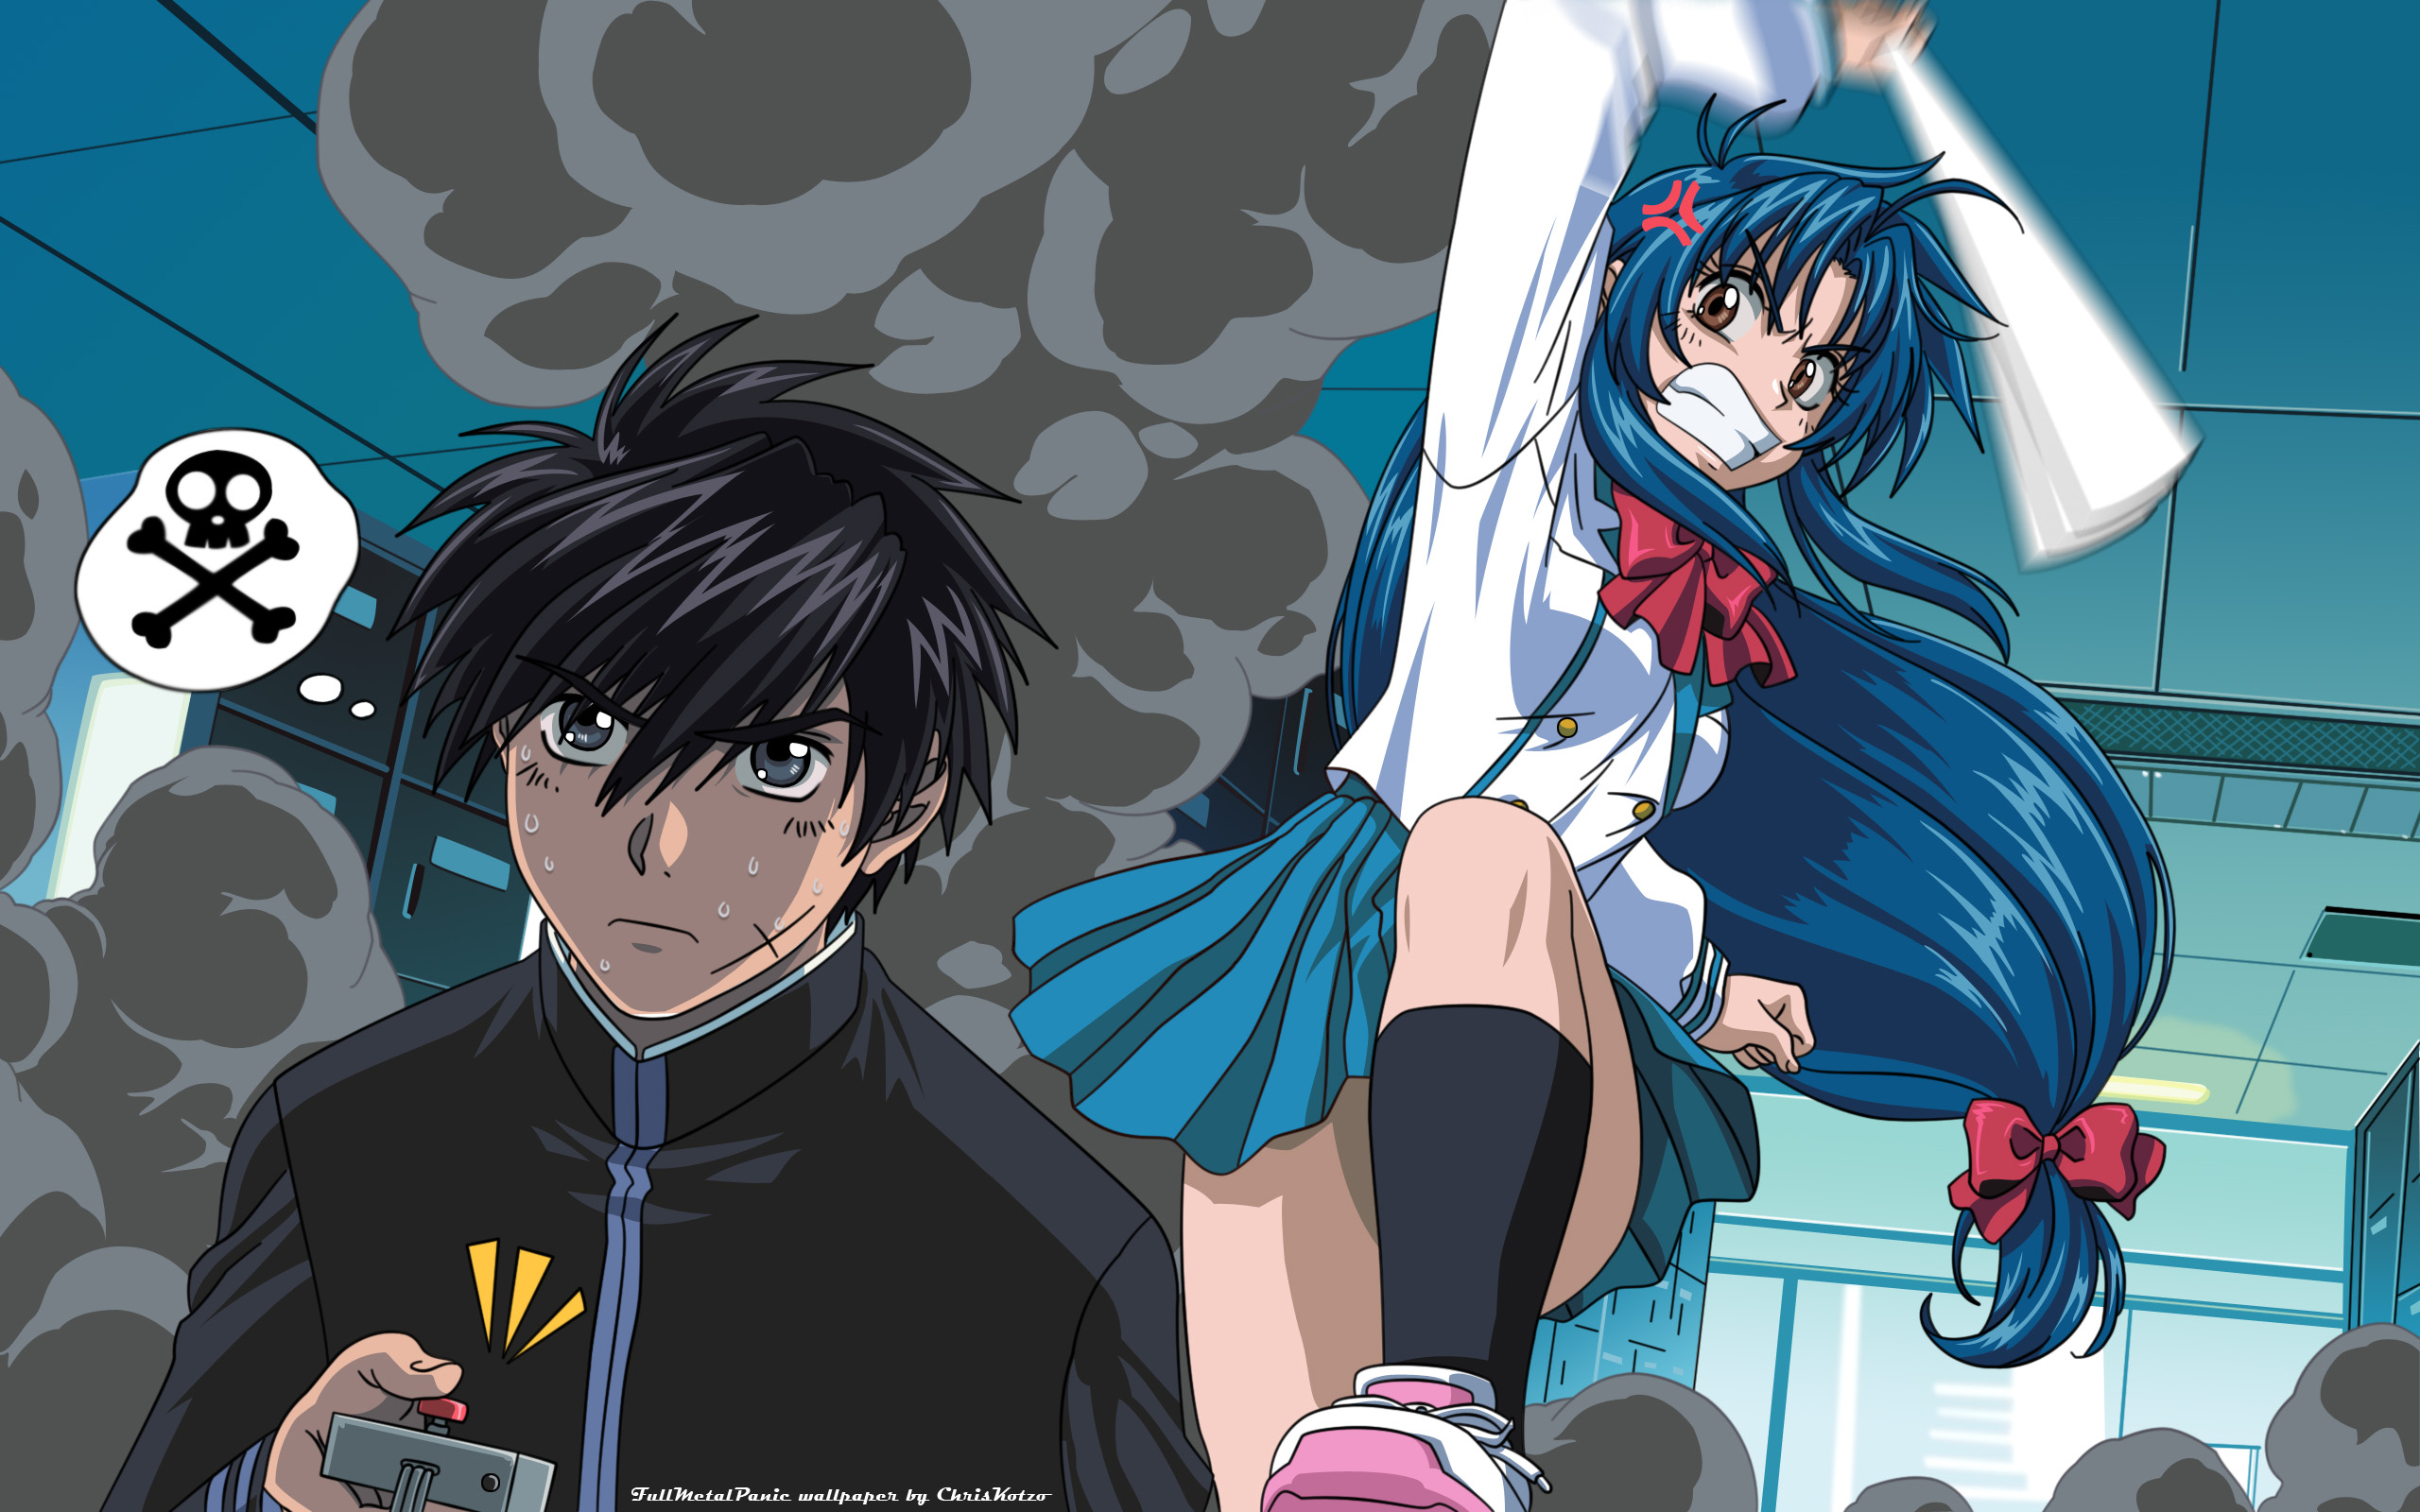 Anime - Full Metal Panic!  - Full Metal Panic Wallpaper